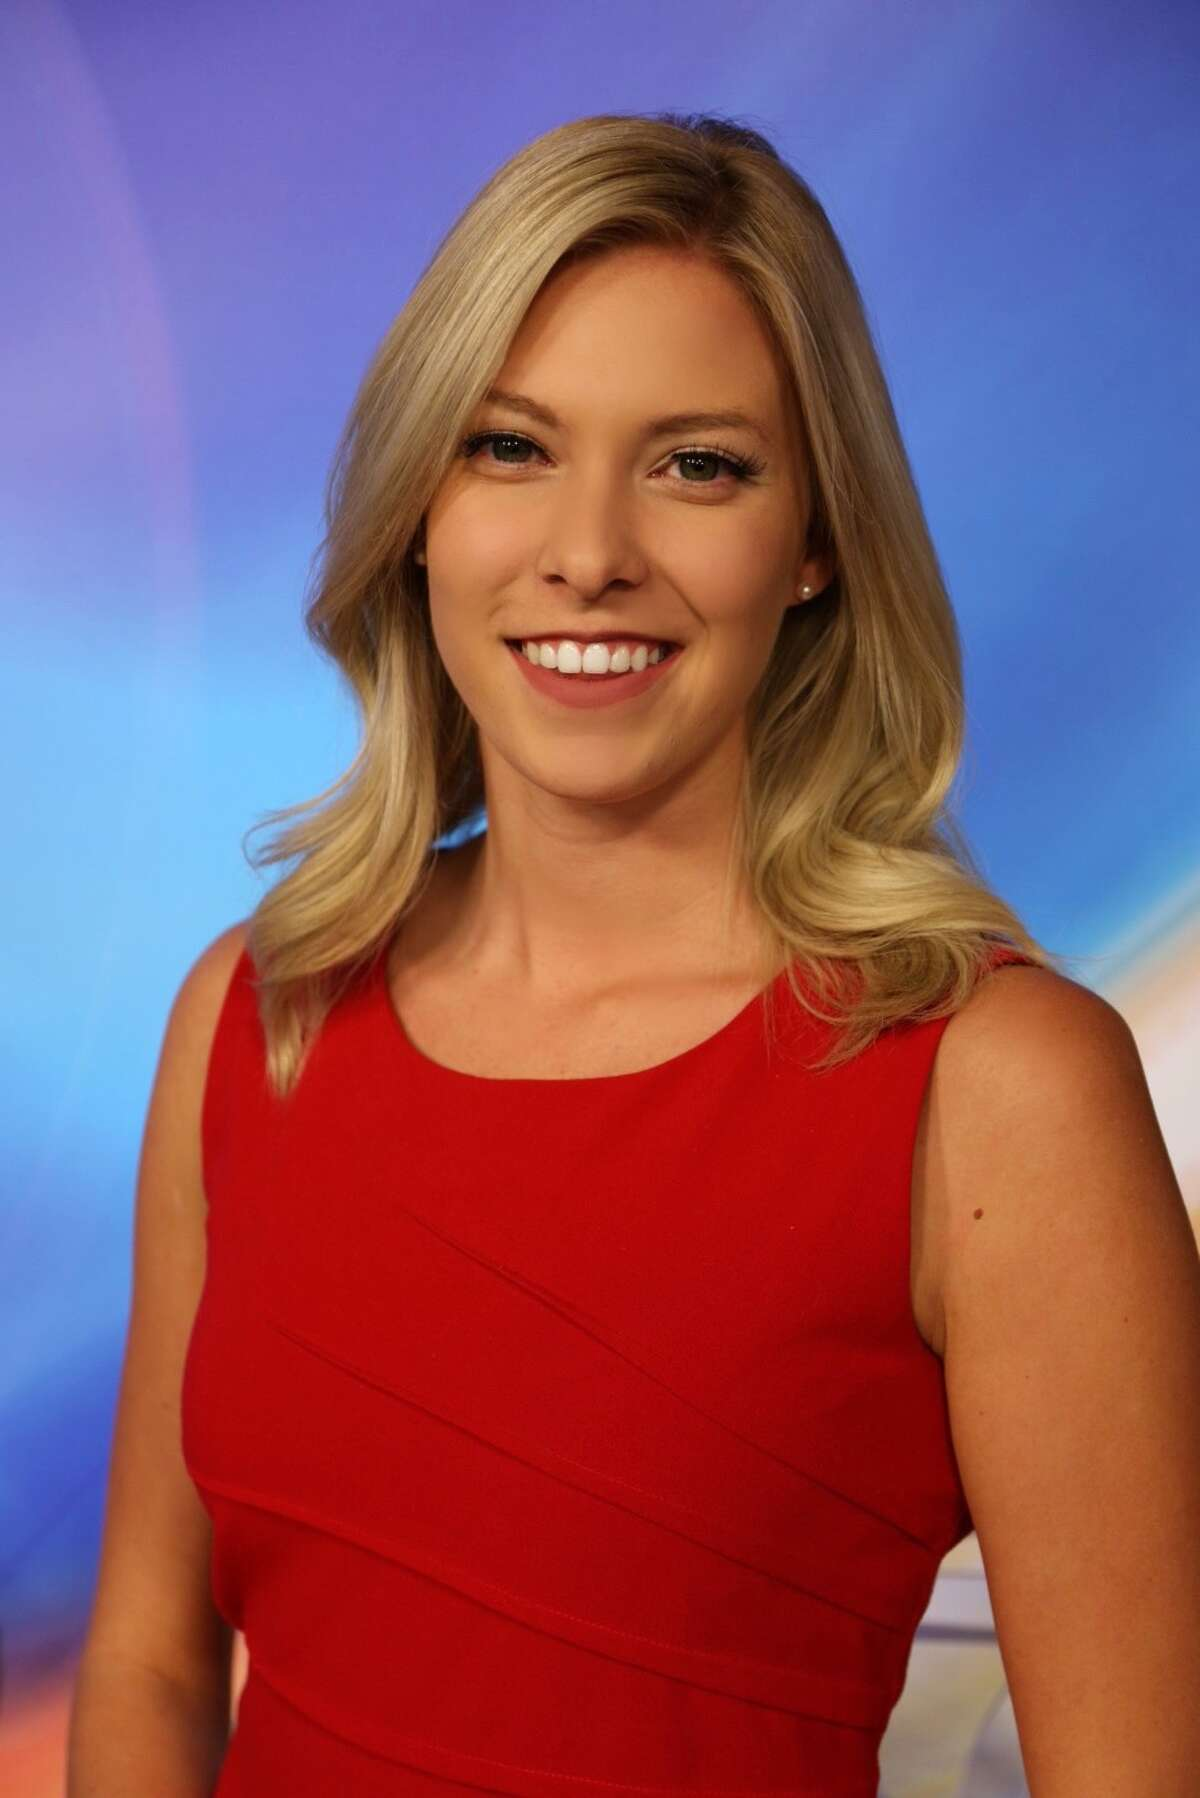 On Saturday, KRCR reporter Meaghan Mackey was live-streaming from the scene of a mass drug overdose in Chico when she was attacked.